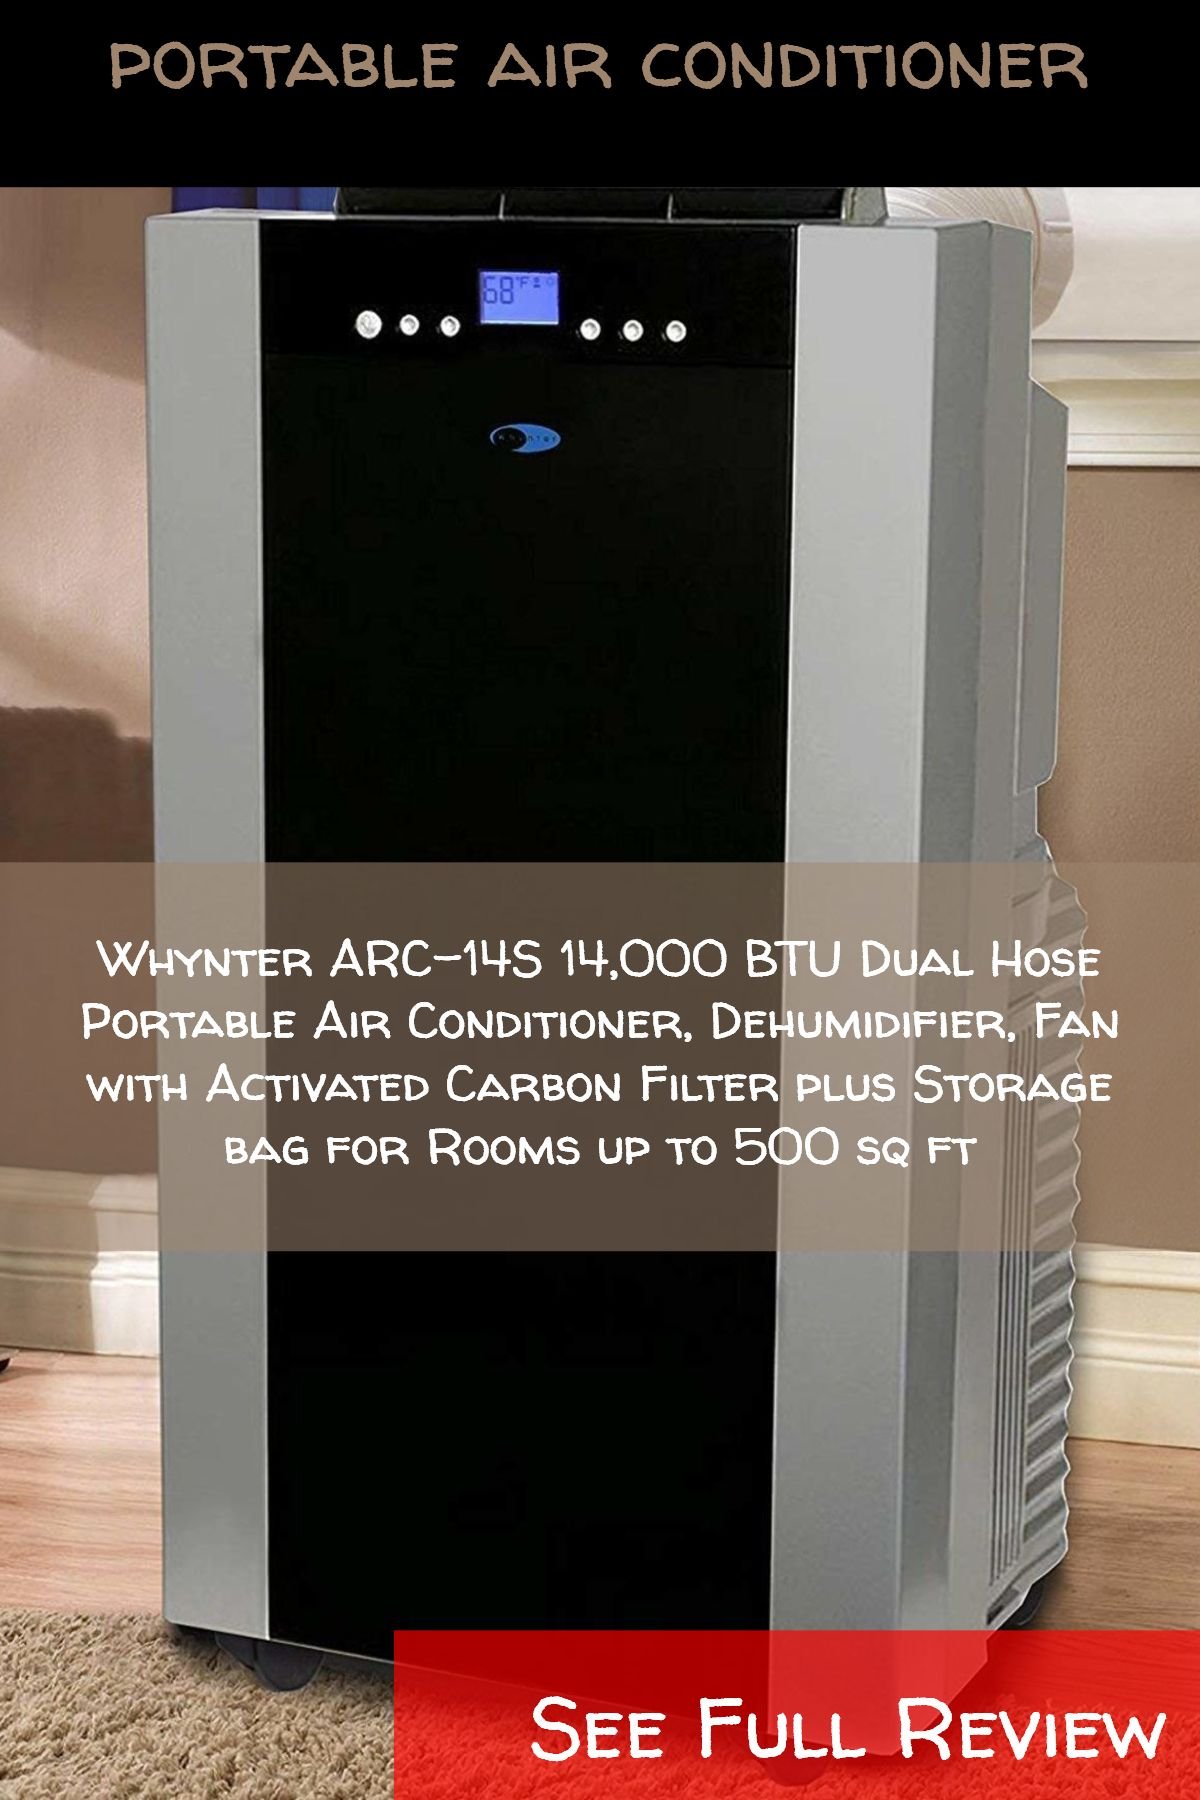 Portable Air Conditioners Whynter Arc 14s 14 000 Btu Dual Hose